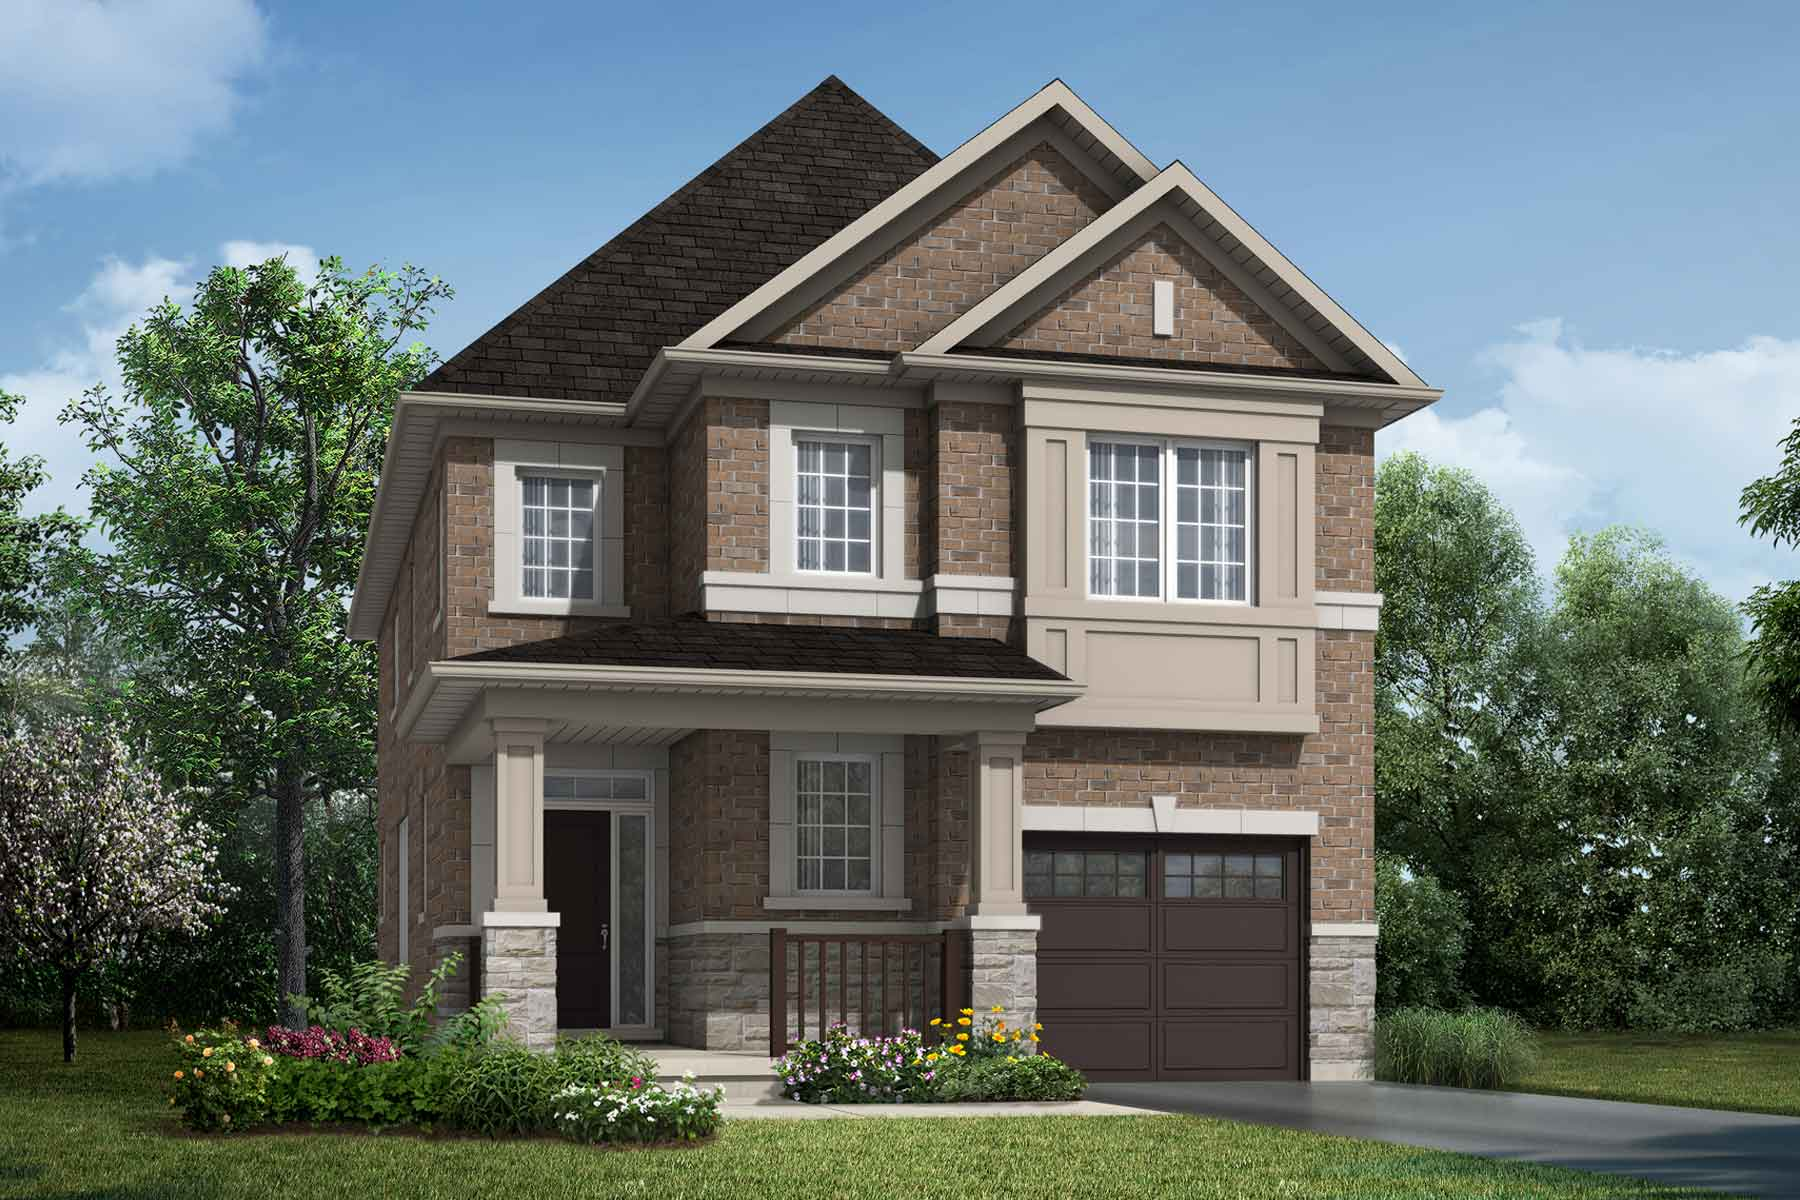 The Linwood Plan traditional_southestates_linwood at Wildflower Crossing in Kitchener Ontario by Mattamy Homes